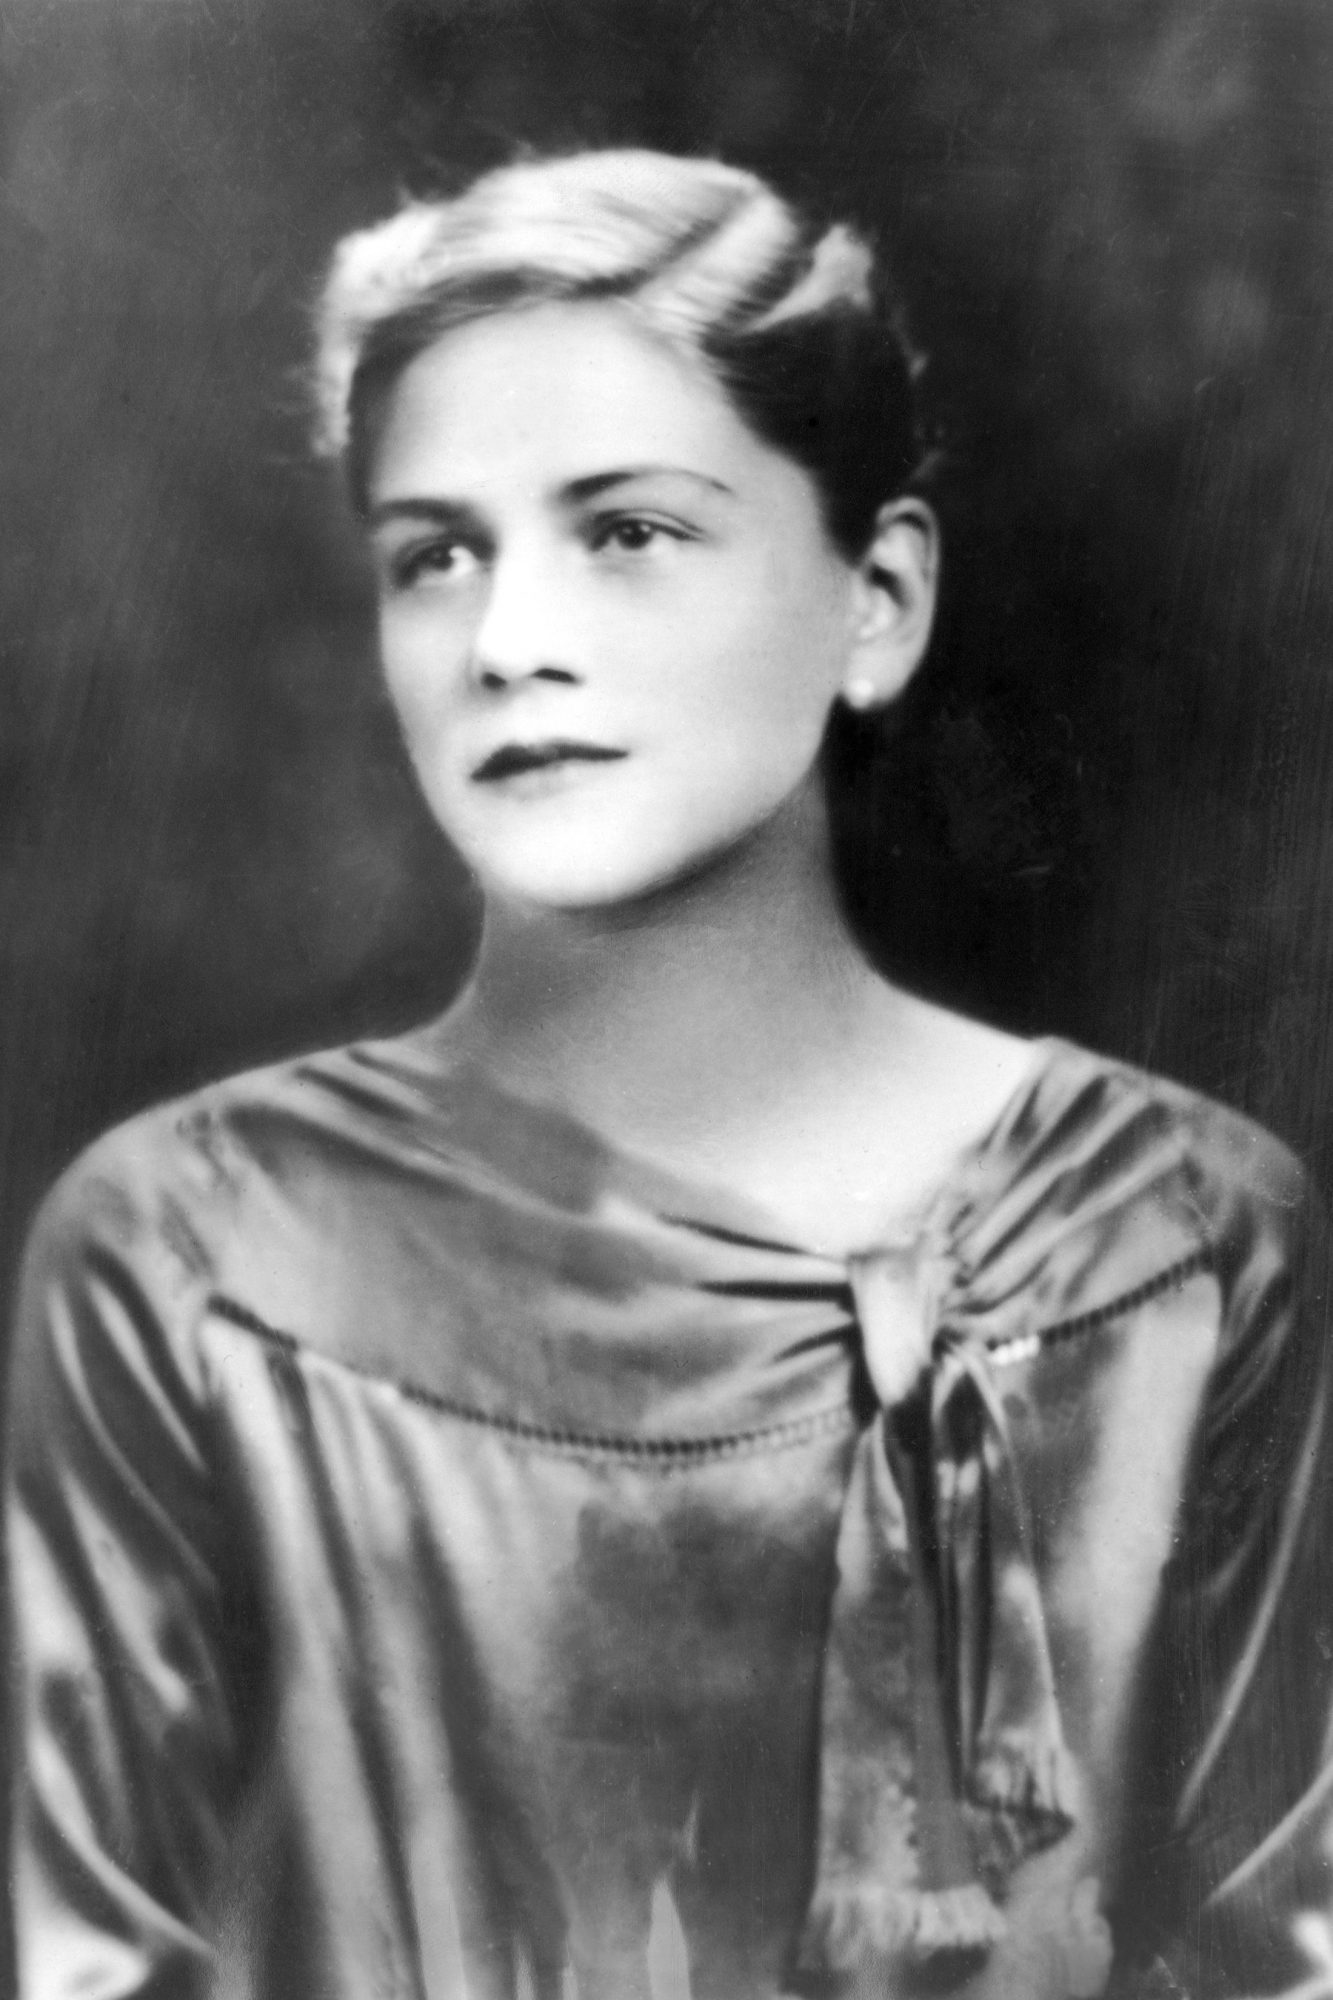 Lee Miller, First Female Photographer 1928